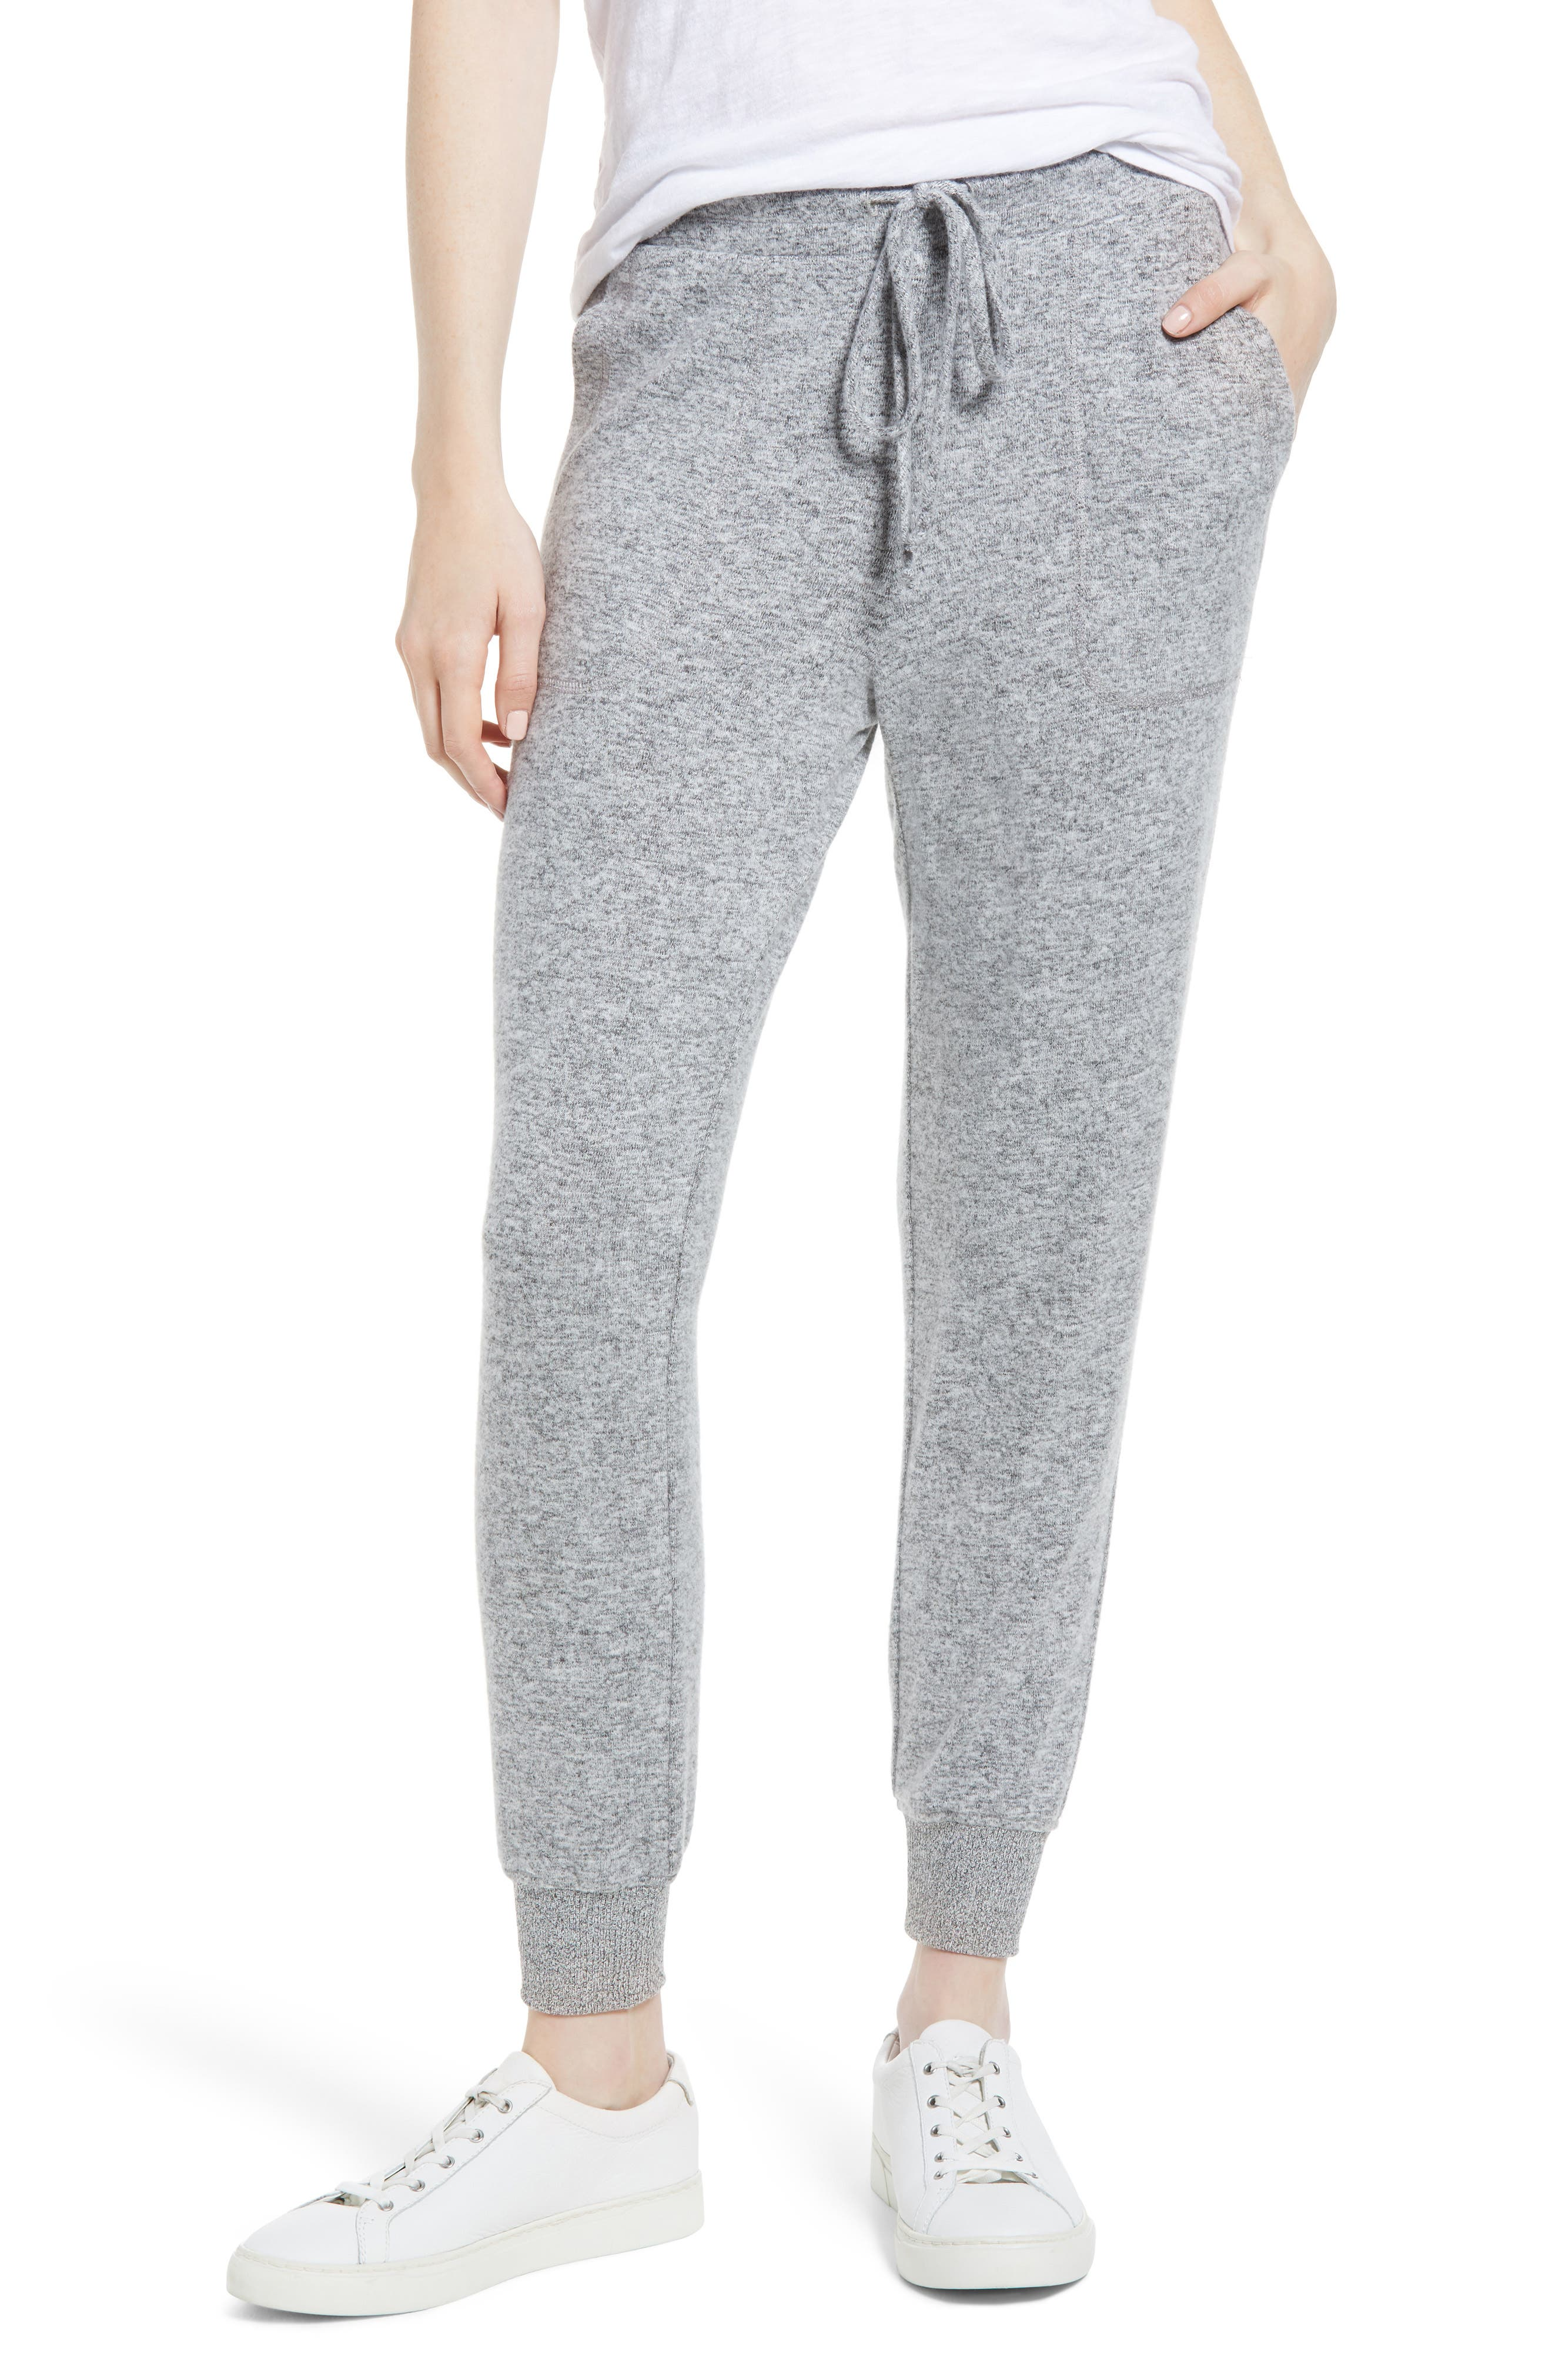 x Living in Yellow Skye Cozy Jogger Pants,                             Main thumbnail 1, color,                             Heather Grey